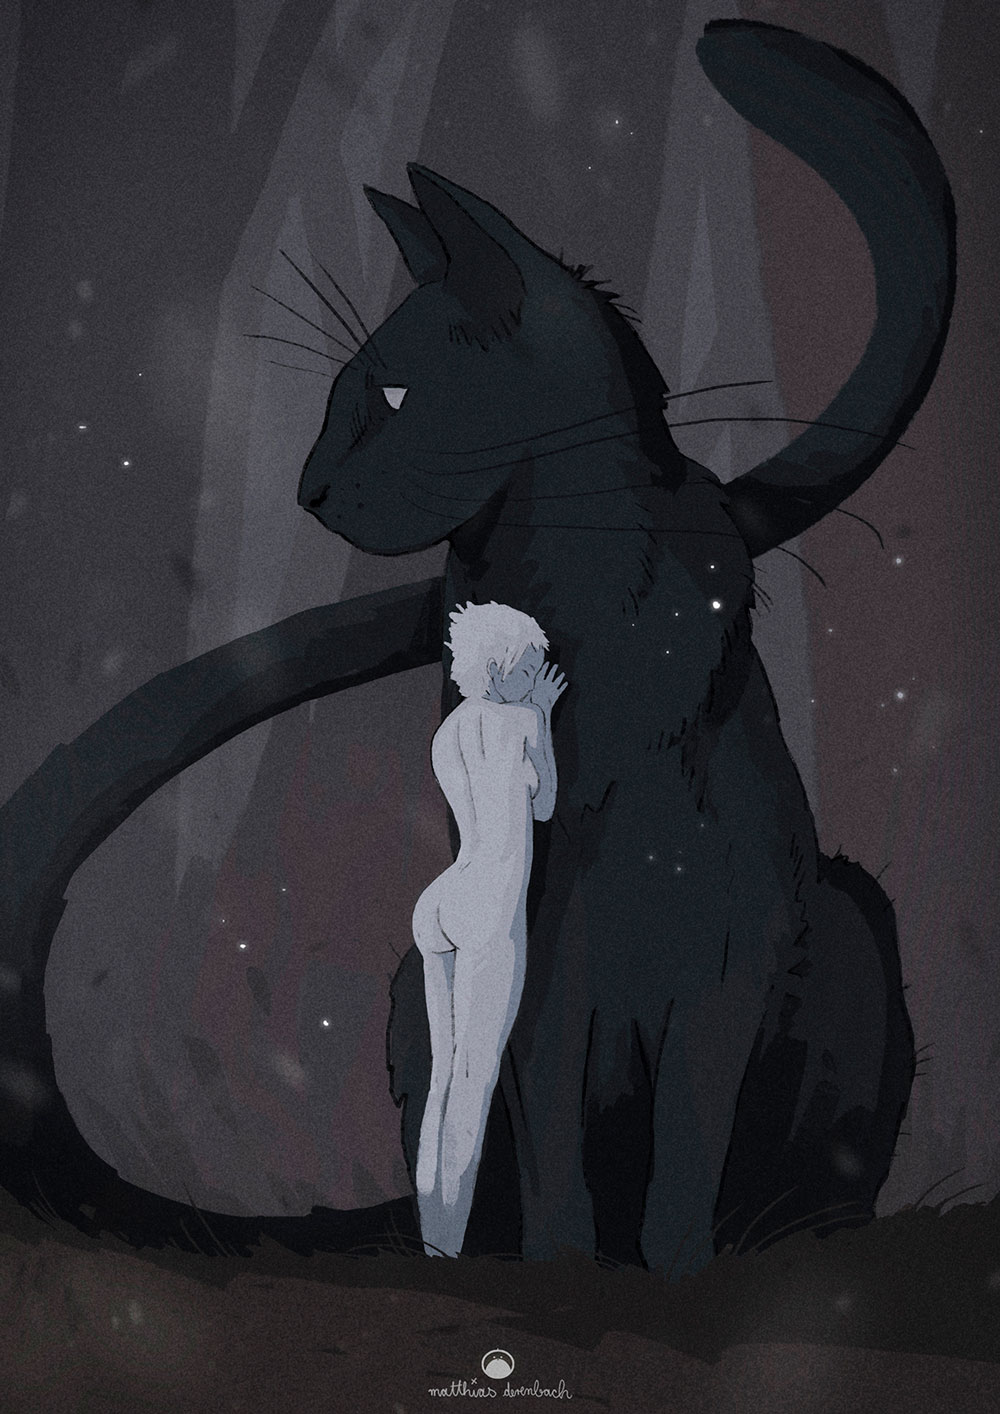 Digital artwork titled 'Pussy Cat'. Illustration of a naked woman in shades of gray, standing in front of a big black cat and hugging it. The surreal proportions create an interesting visual effect - by Matthias Derenbach